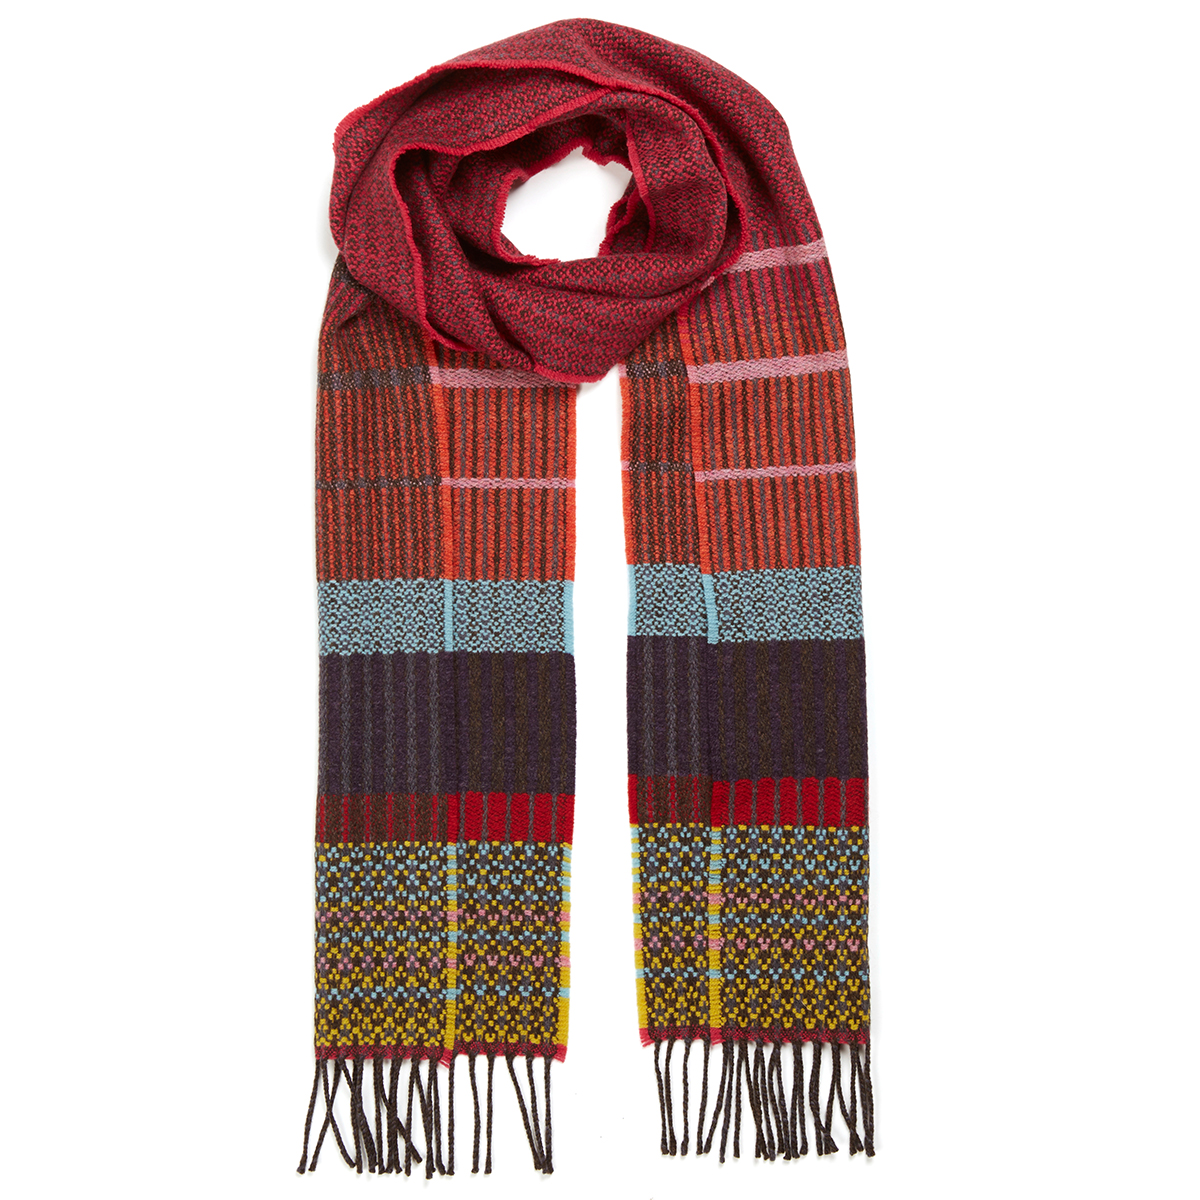 Anouilh fuchsia scarf by Wallace Sewell